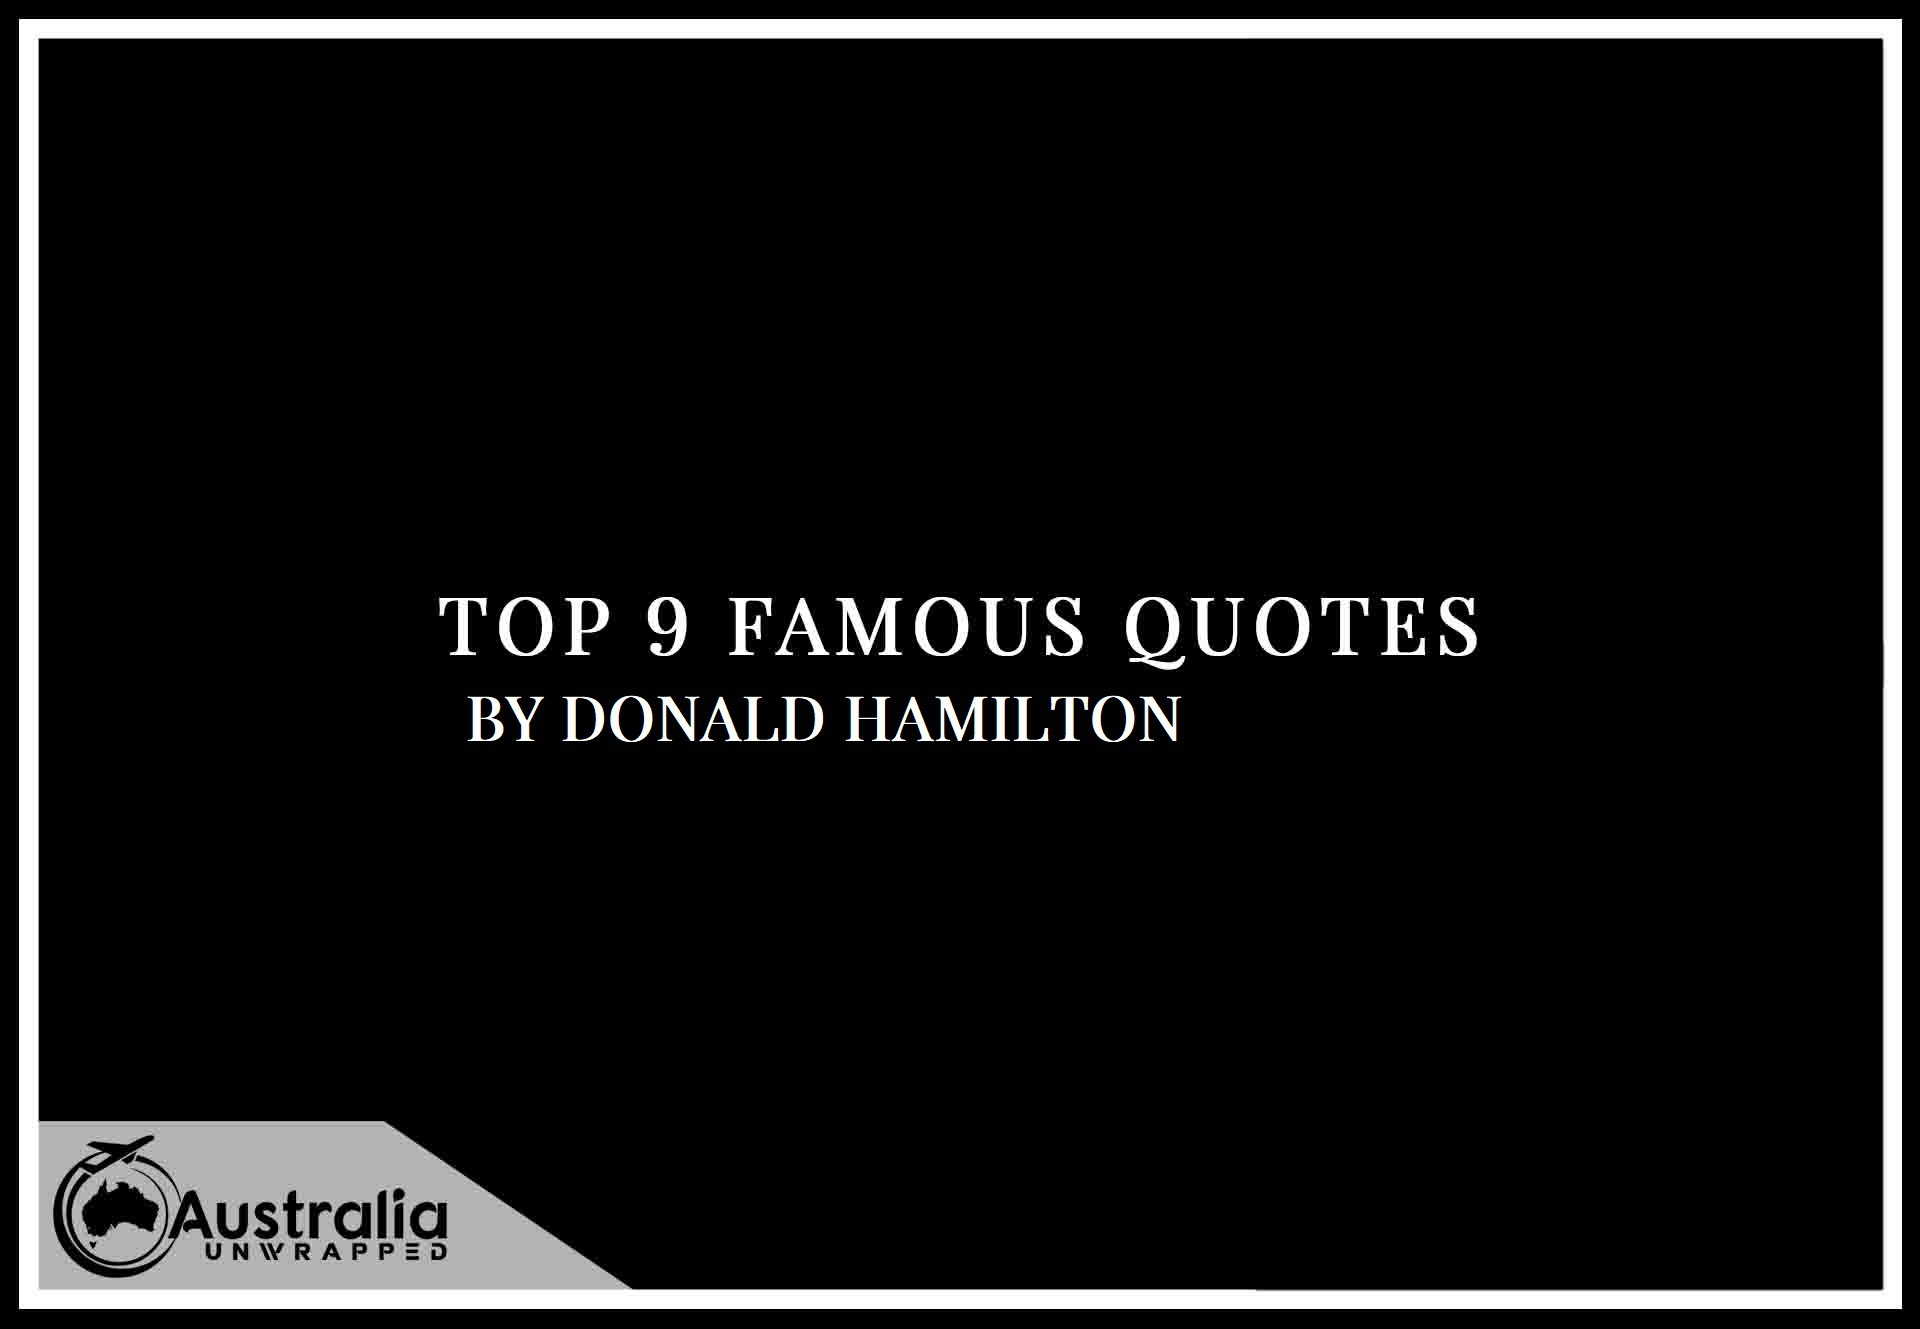 Top 9 Famous Quotes by Author Donald Hamilton